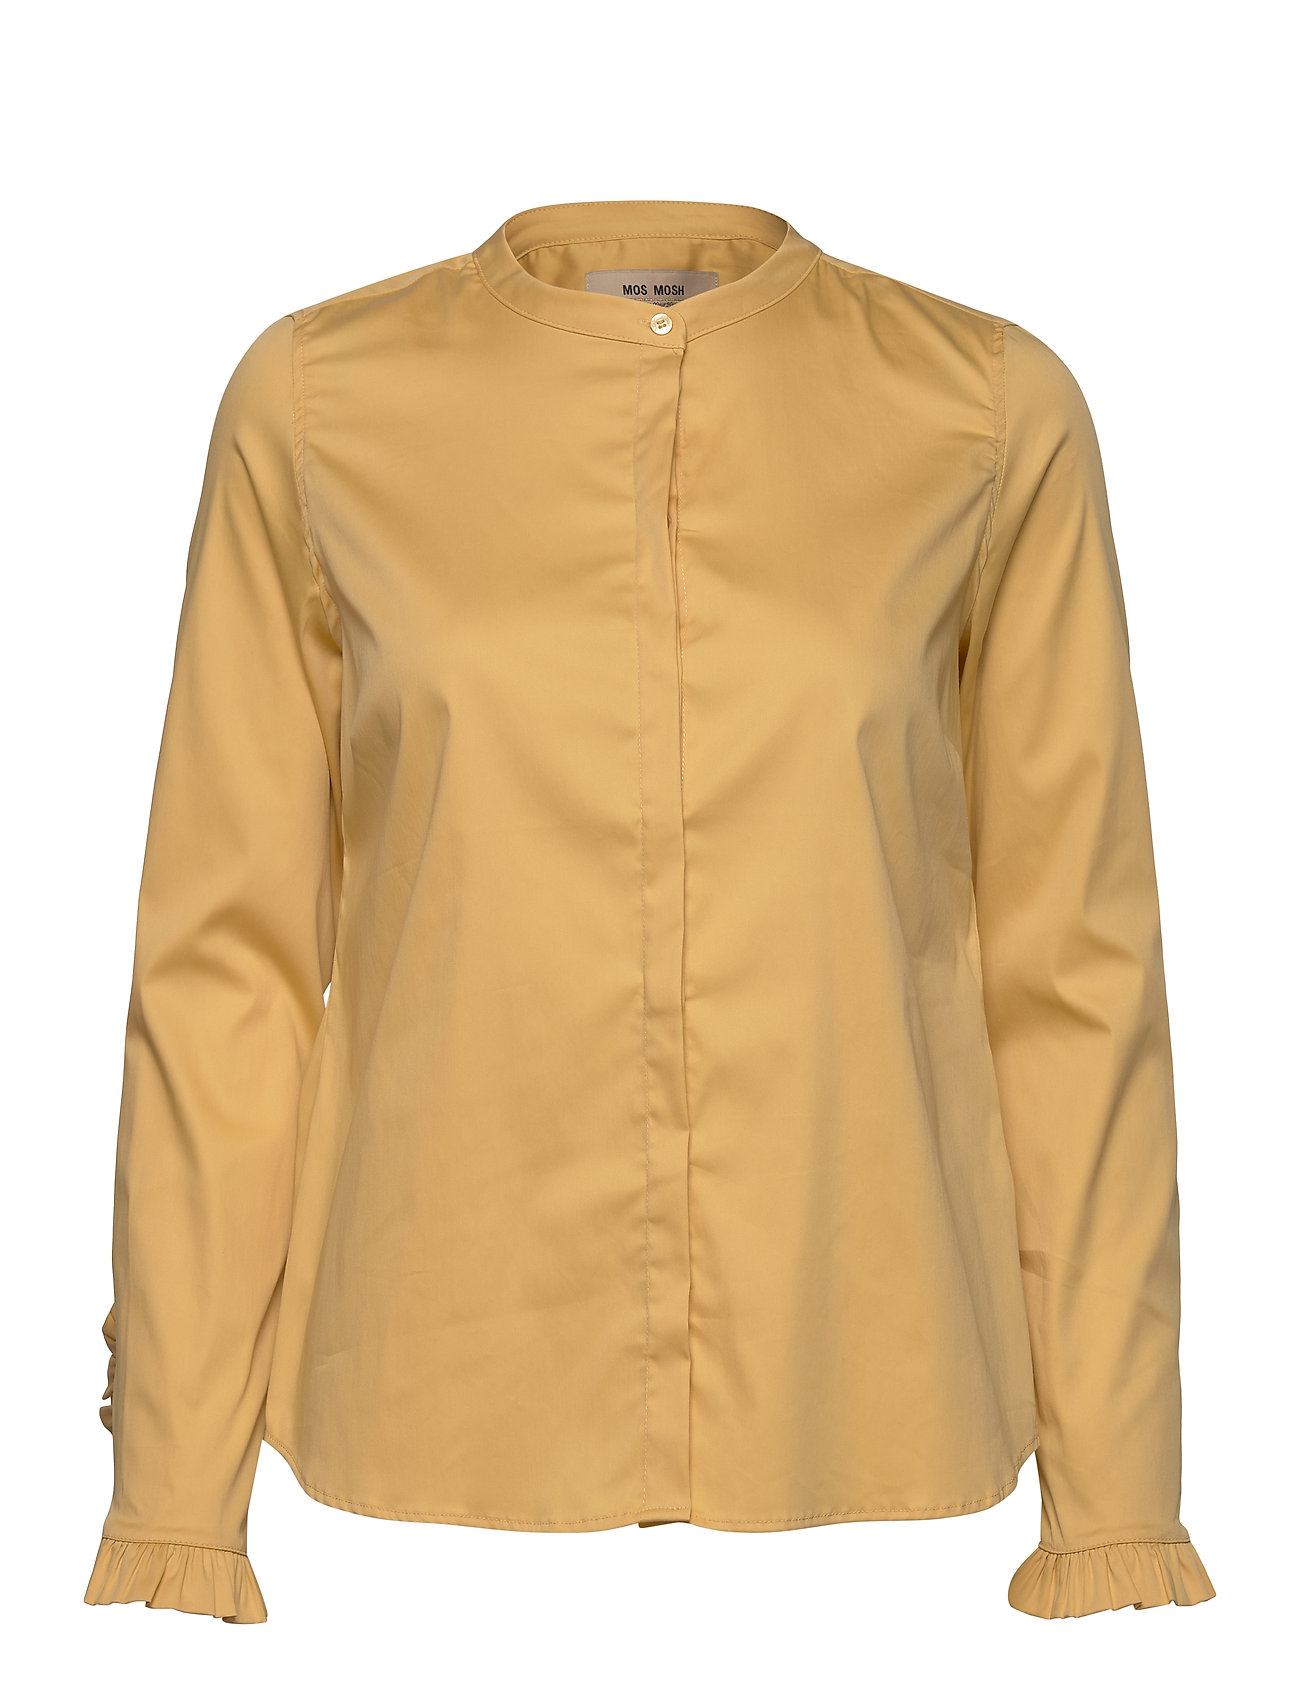 Image of Mattie Sustainable Shirt Langærmet Skjorte Gul MOS MOSH (3341056637)